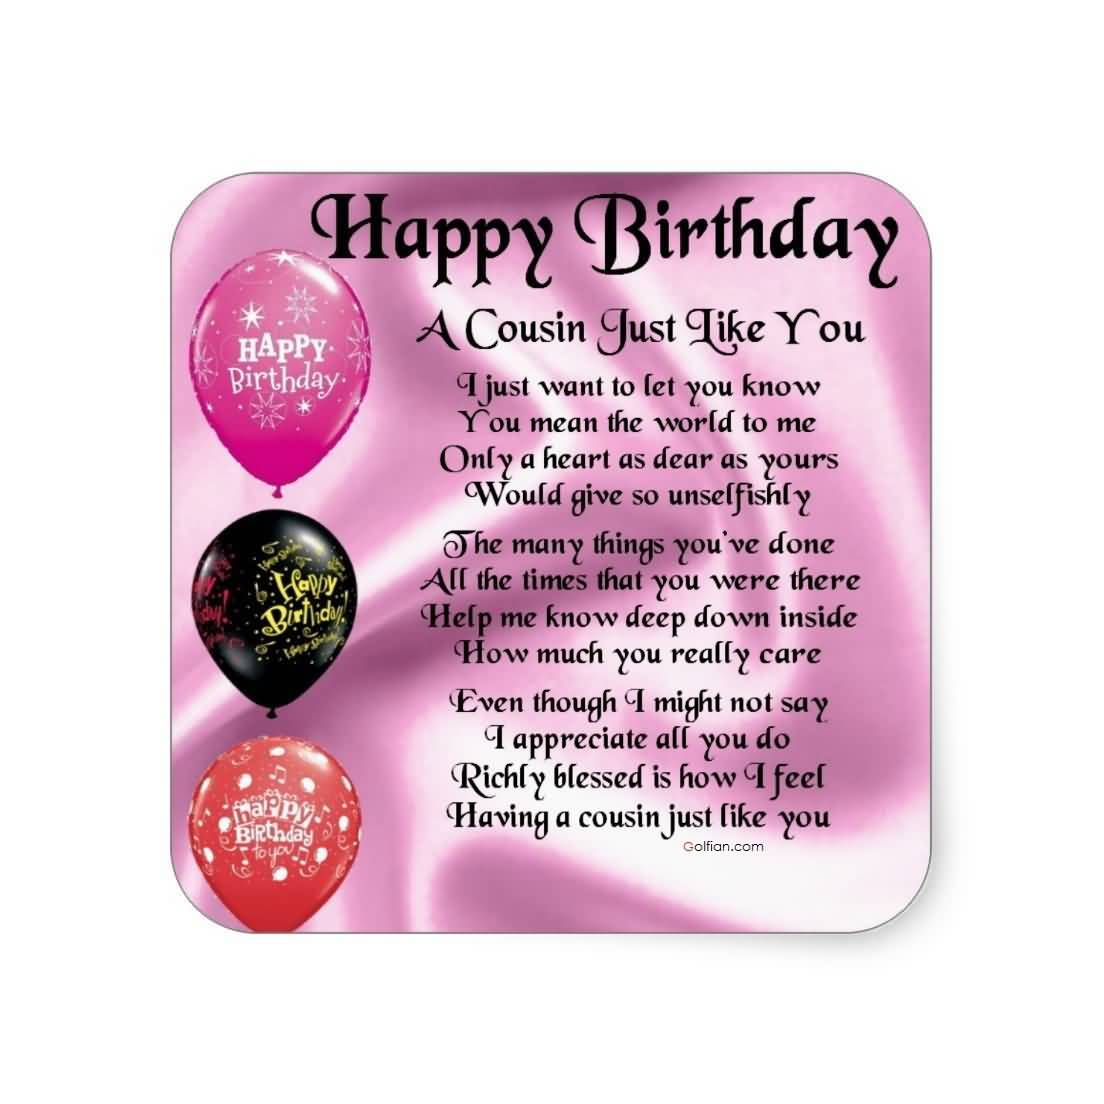 stickers for birthday wishes ; Nice-Poem-Birthday-Wishes-For-Cousin-E-Card